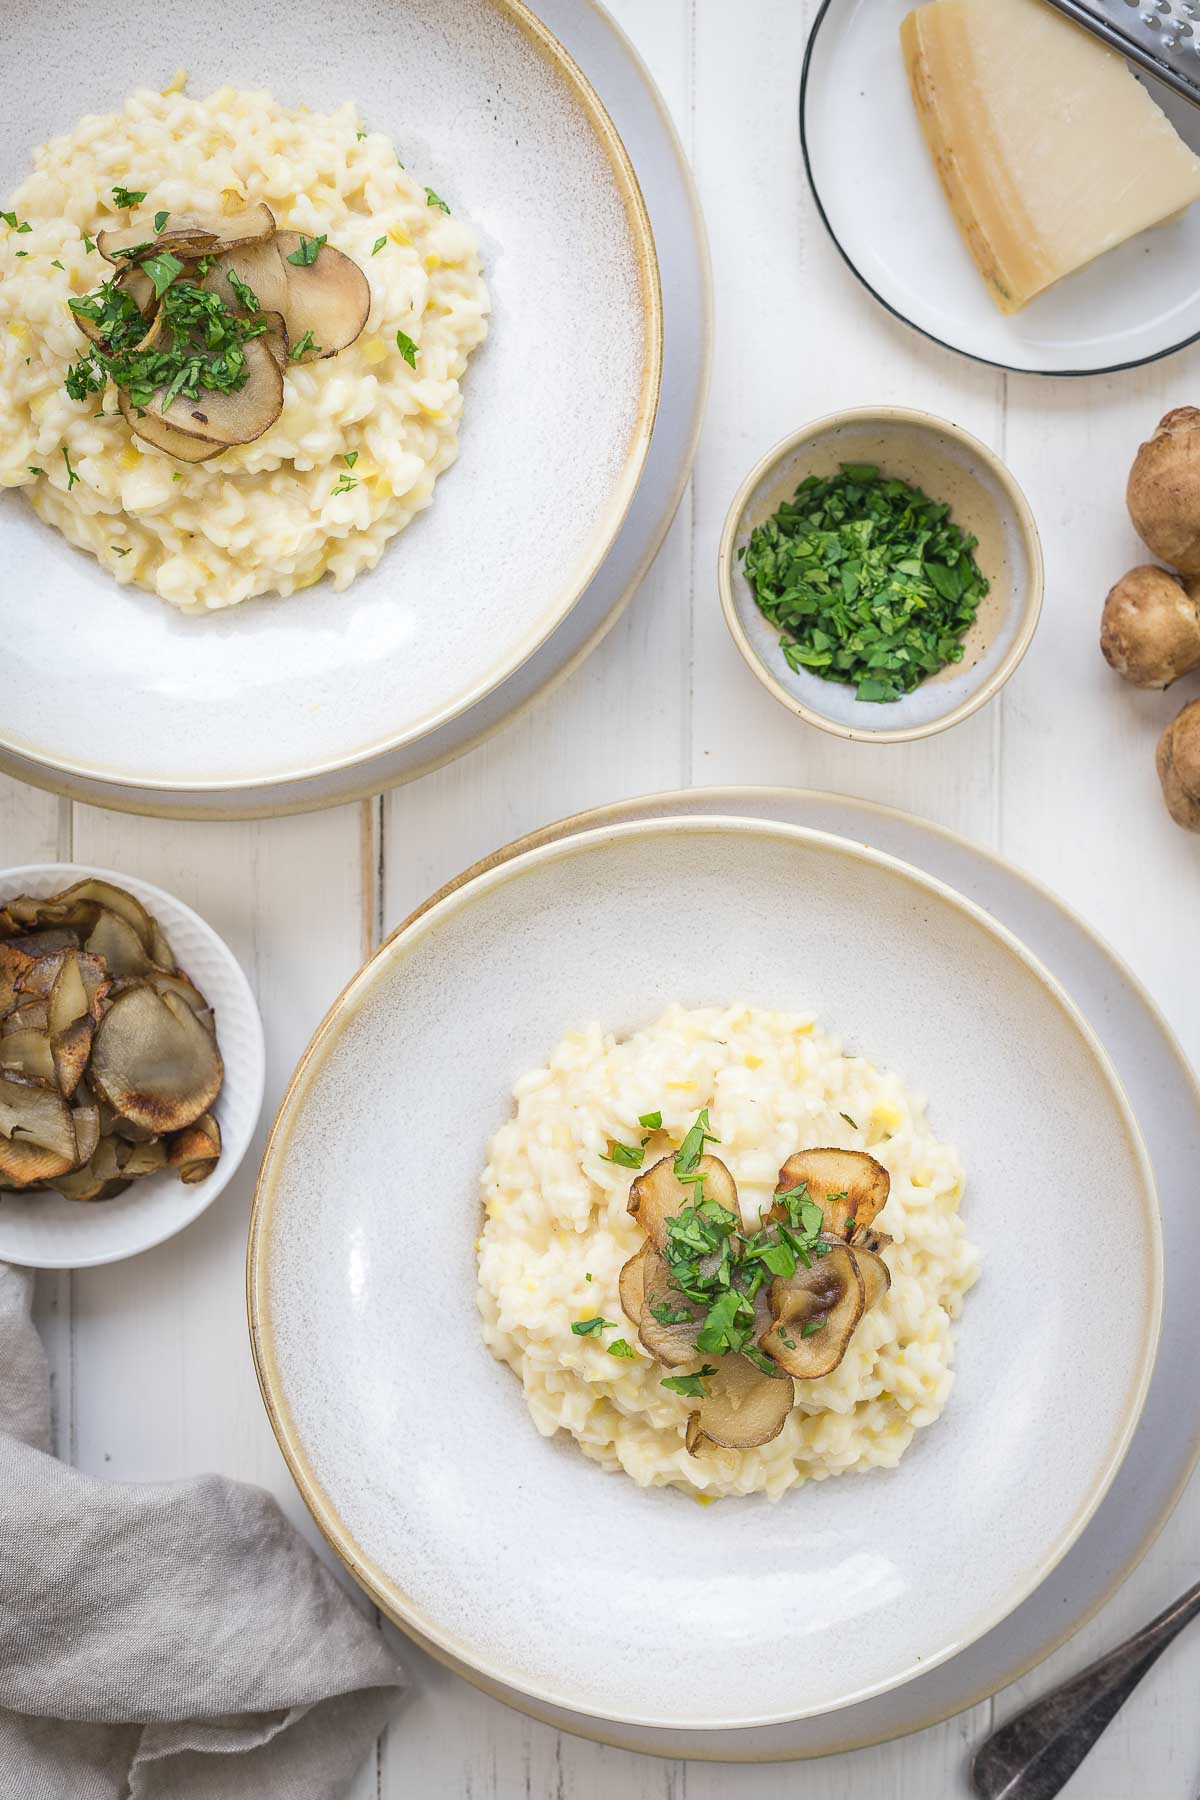 Leek Risotto with Fried Jerusalem Artichokes